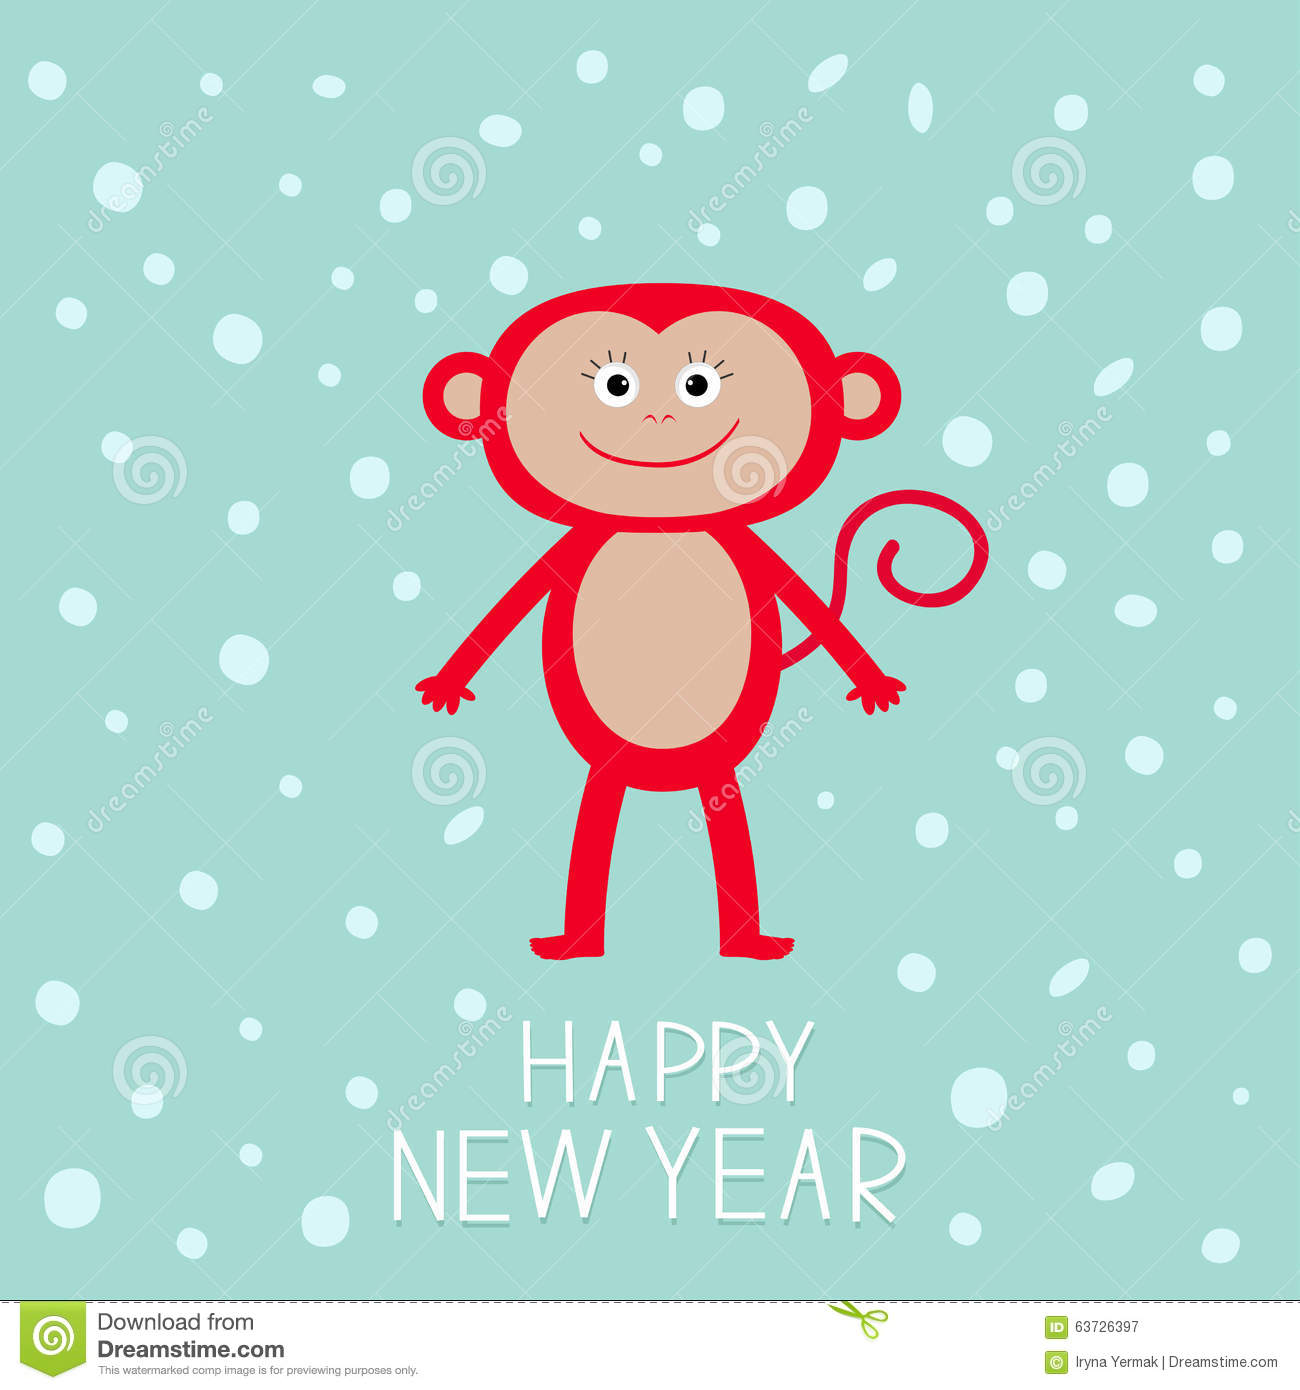 cute red monkey on snow background happy new year 2016 baby illustration greeting